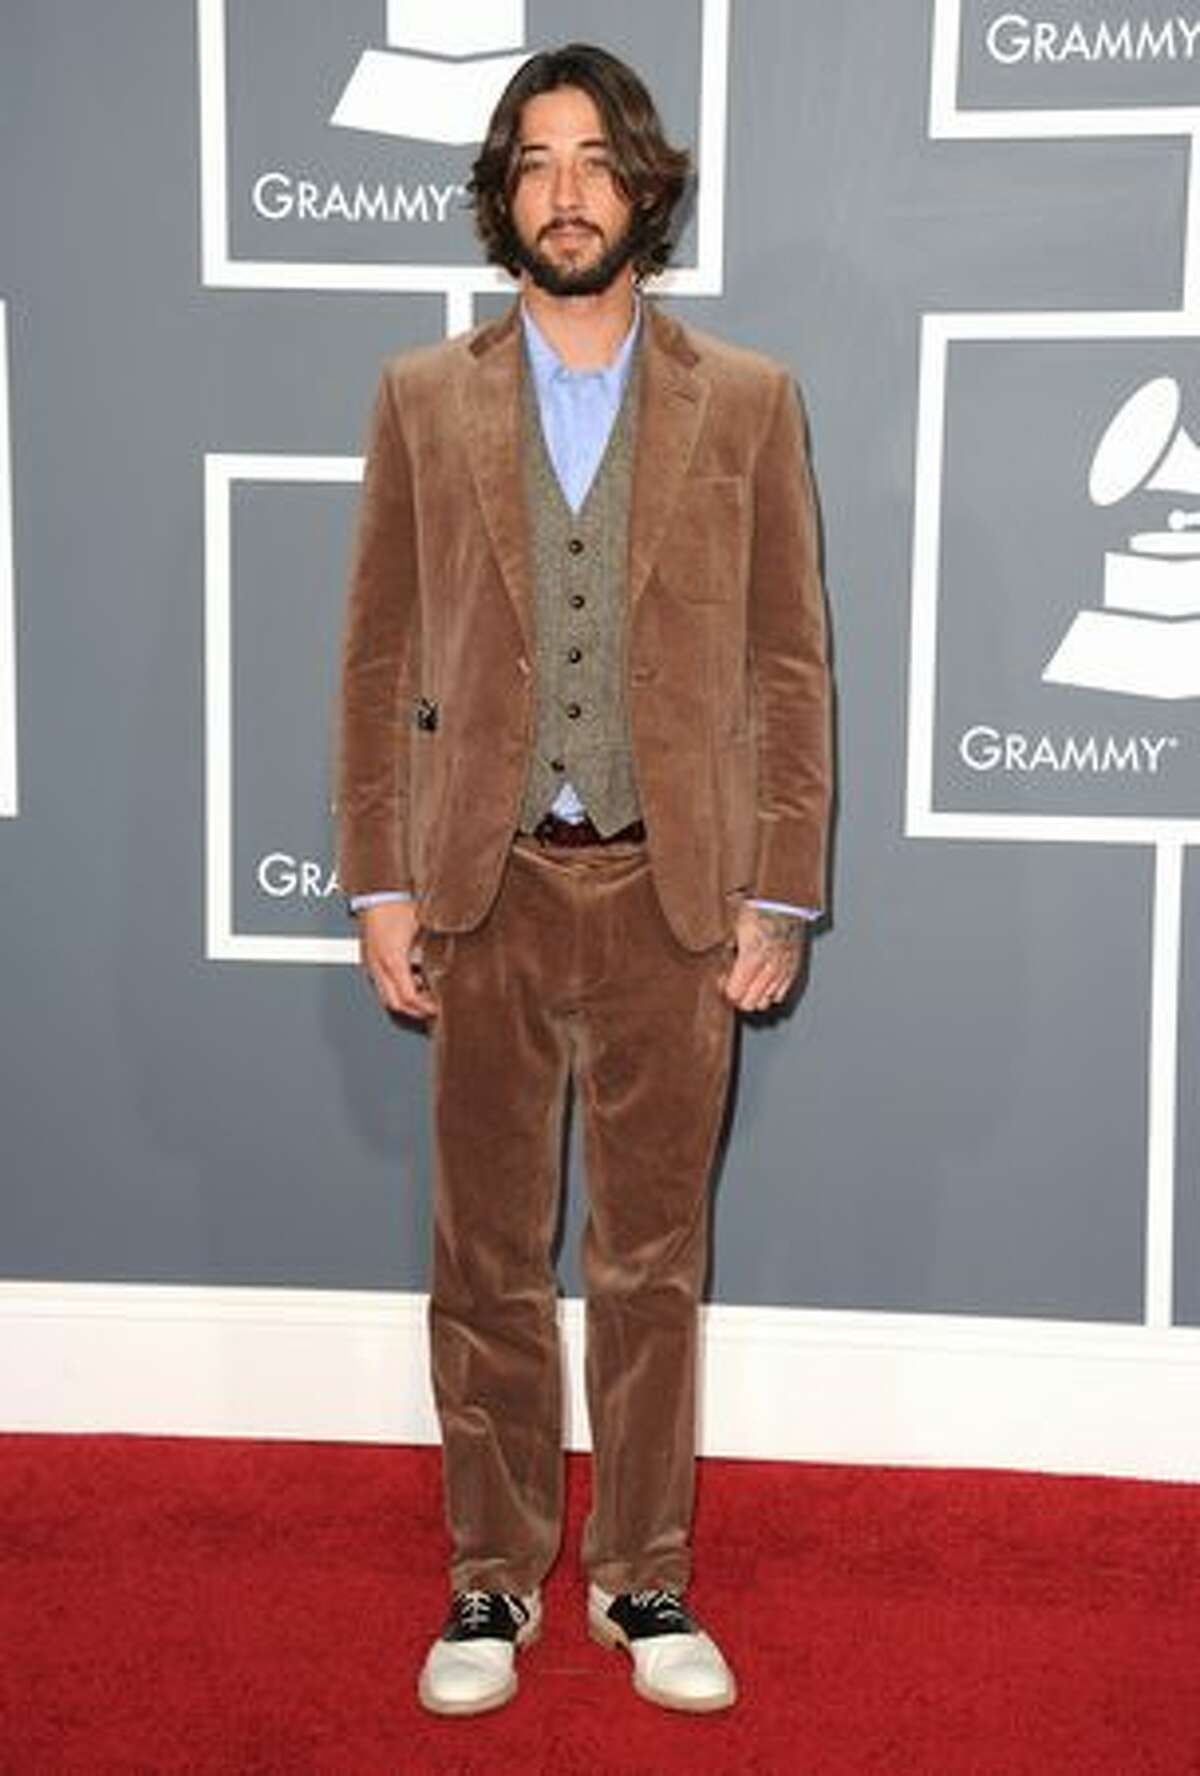 Musician Ryan Bingham is wearing corduroy, velour and bowling shoes. We think. Can't bear to look anymore.